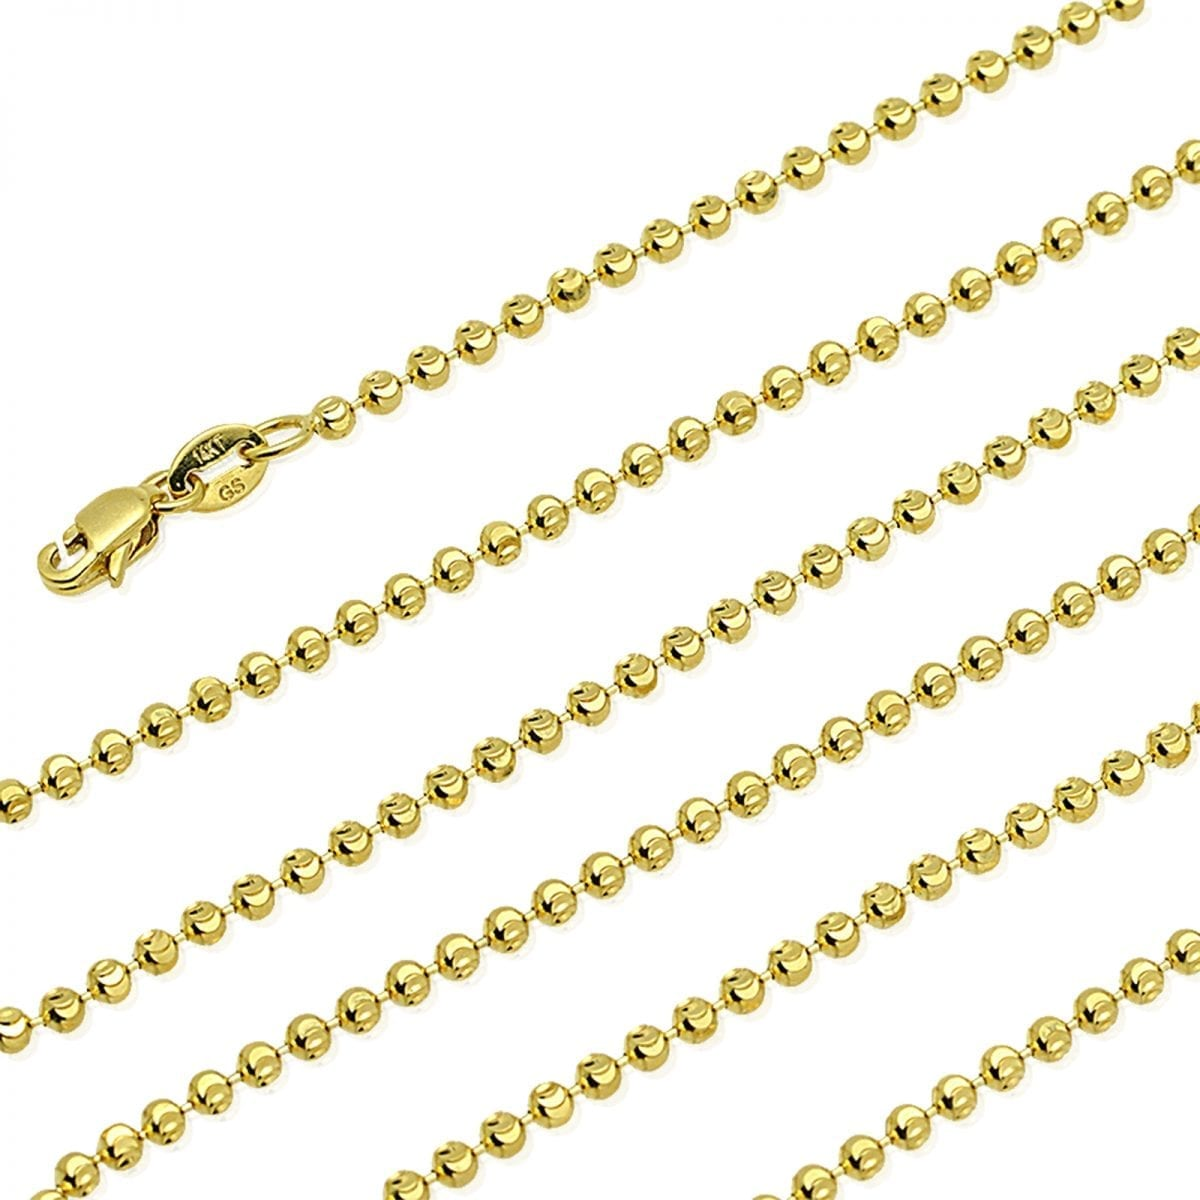 52a56f540a4051 Solid 14K Yellow Gold Half Moon Cut 2mm Bead Ball Chain Necklace 20″-28″ |  WJD Exclusives